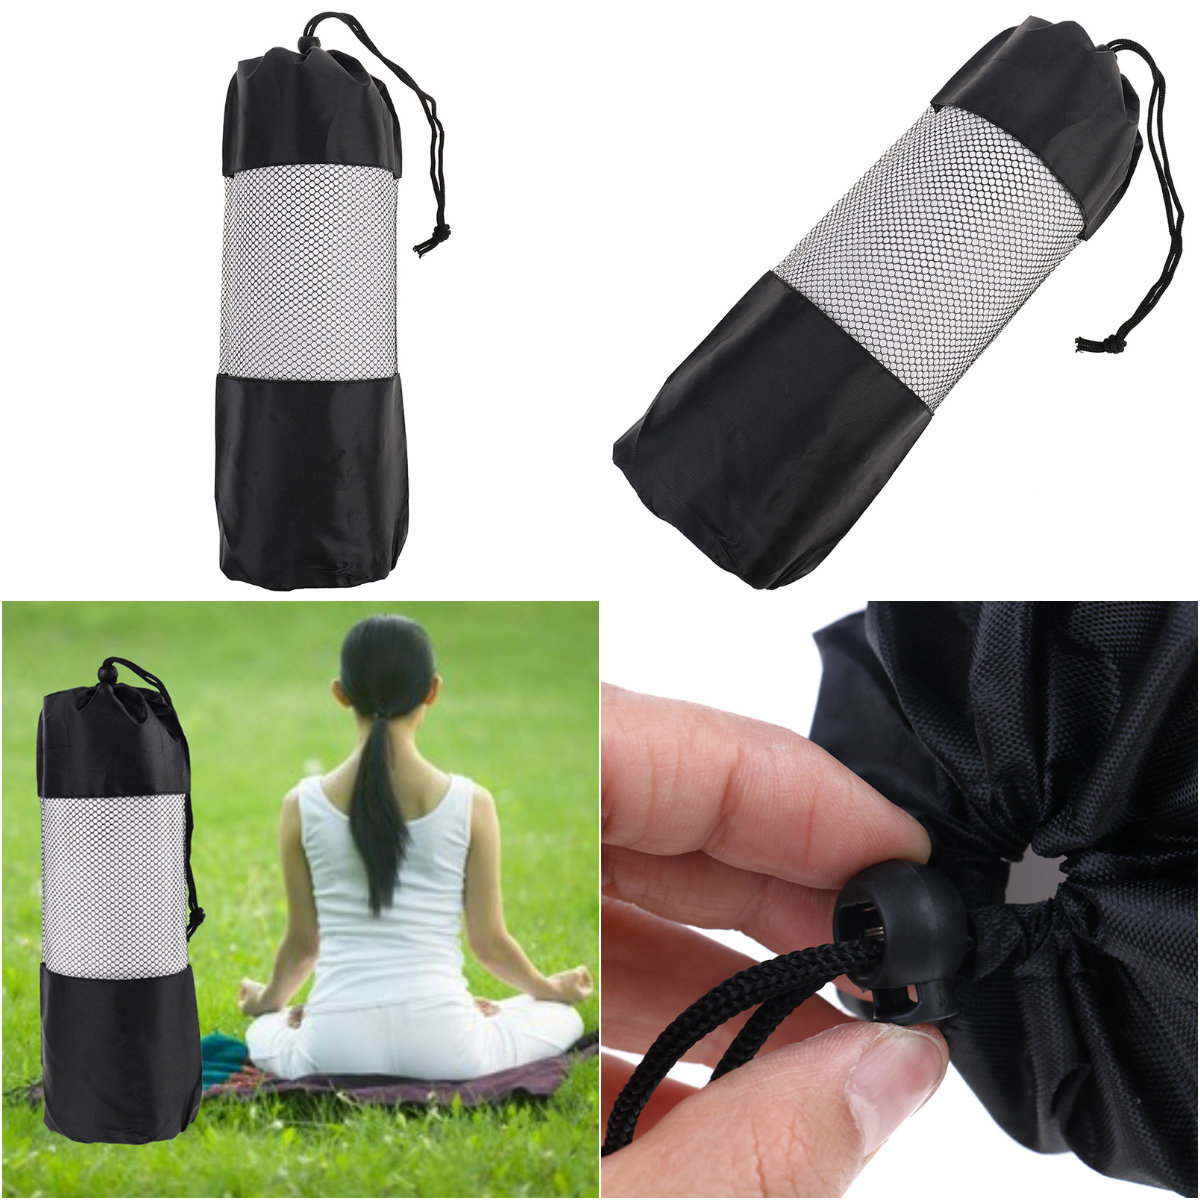 Ropa De Hombre Sport Exercise Mat Carry Strap Drawstring Bag Gym Bag Fitness Backpack 35*10.5cm Yoga Bag Canvas Practical Yoga Pilates Crazy Price